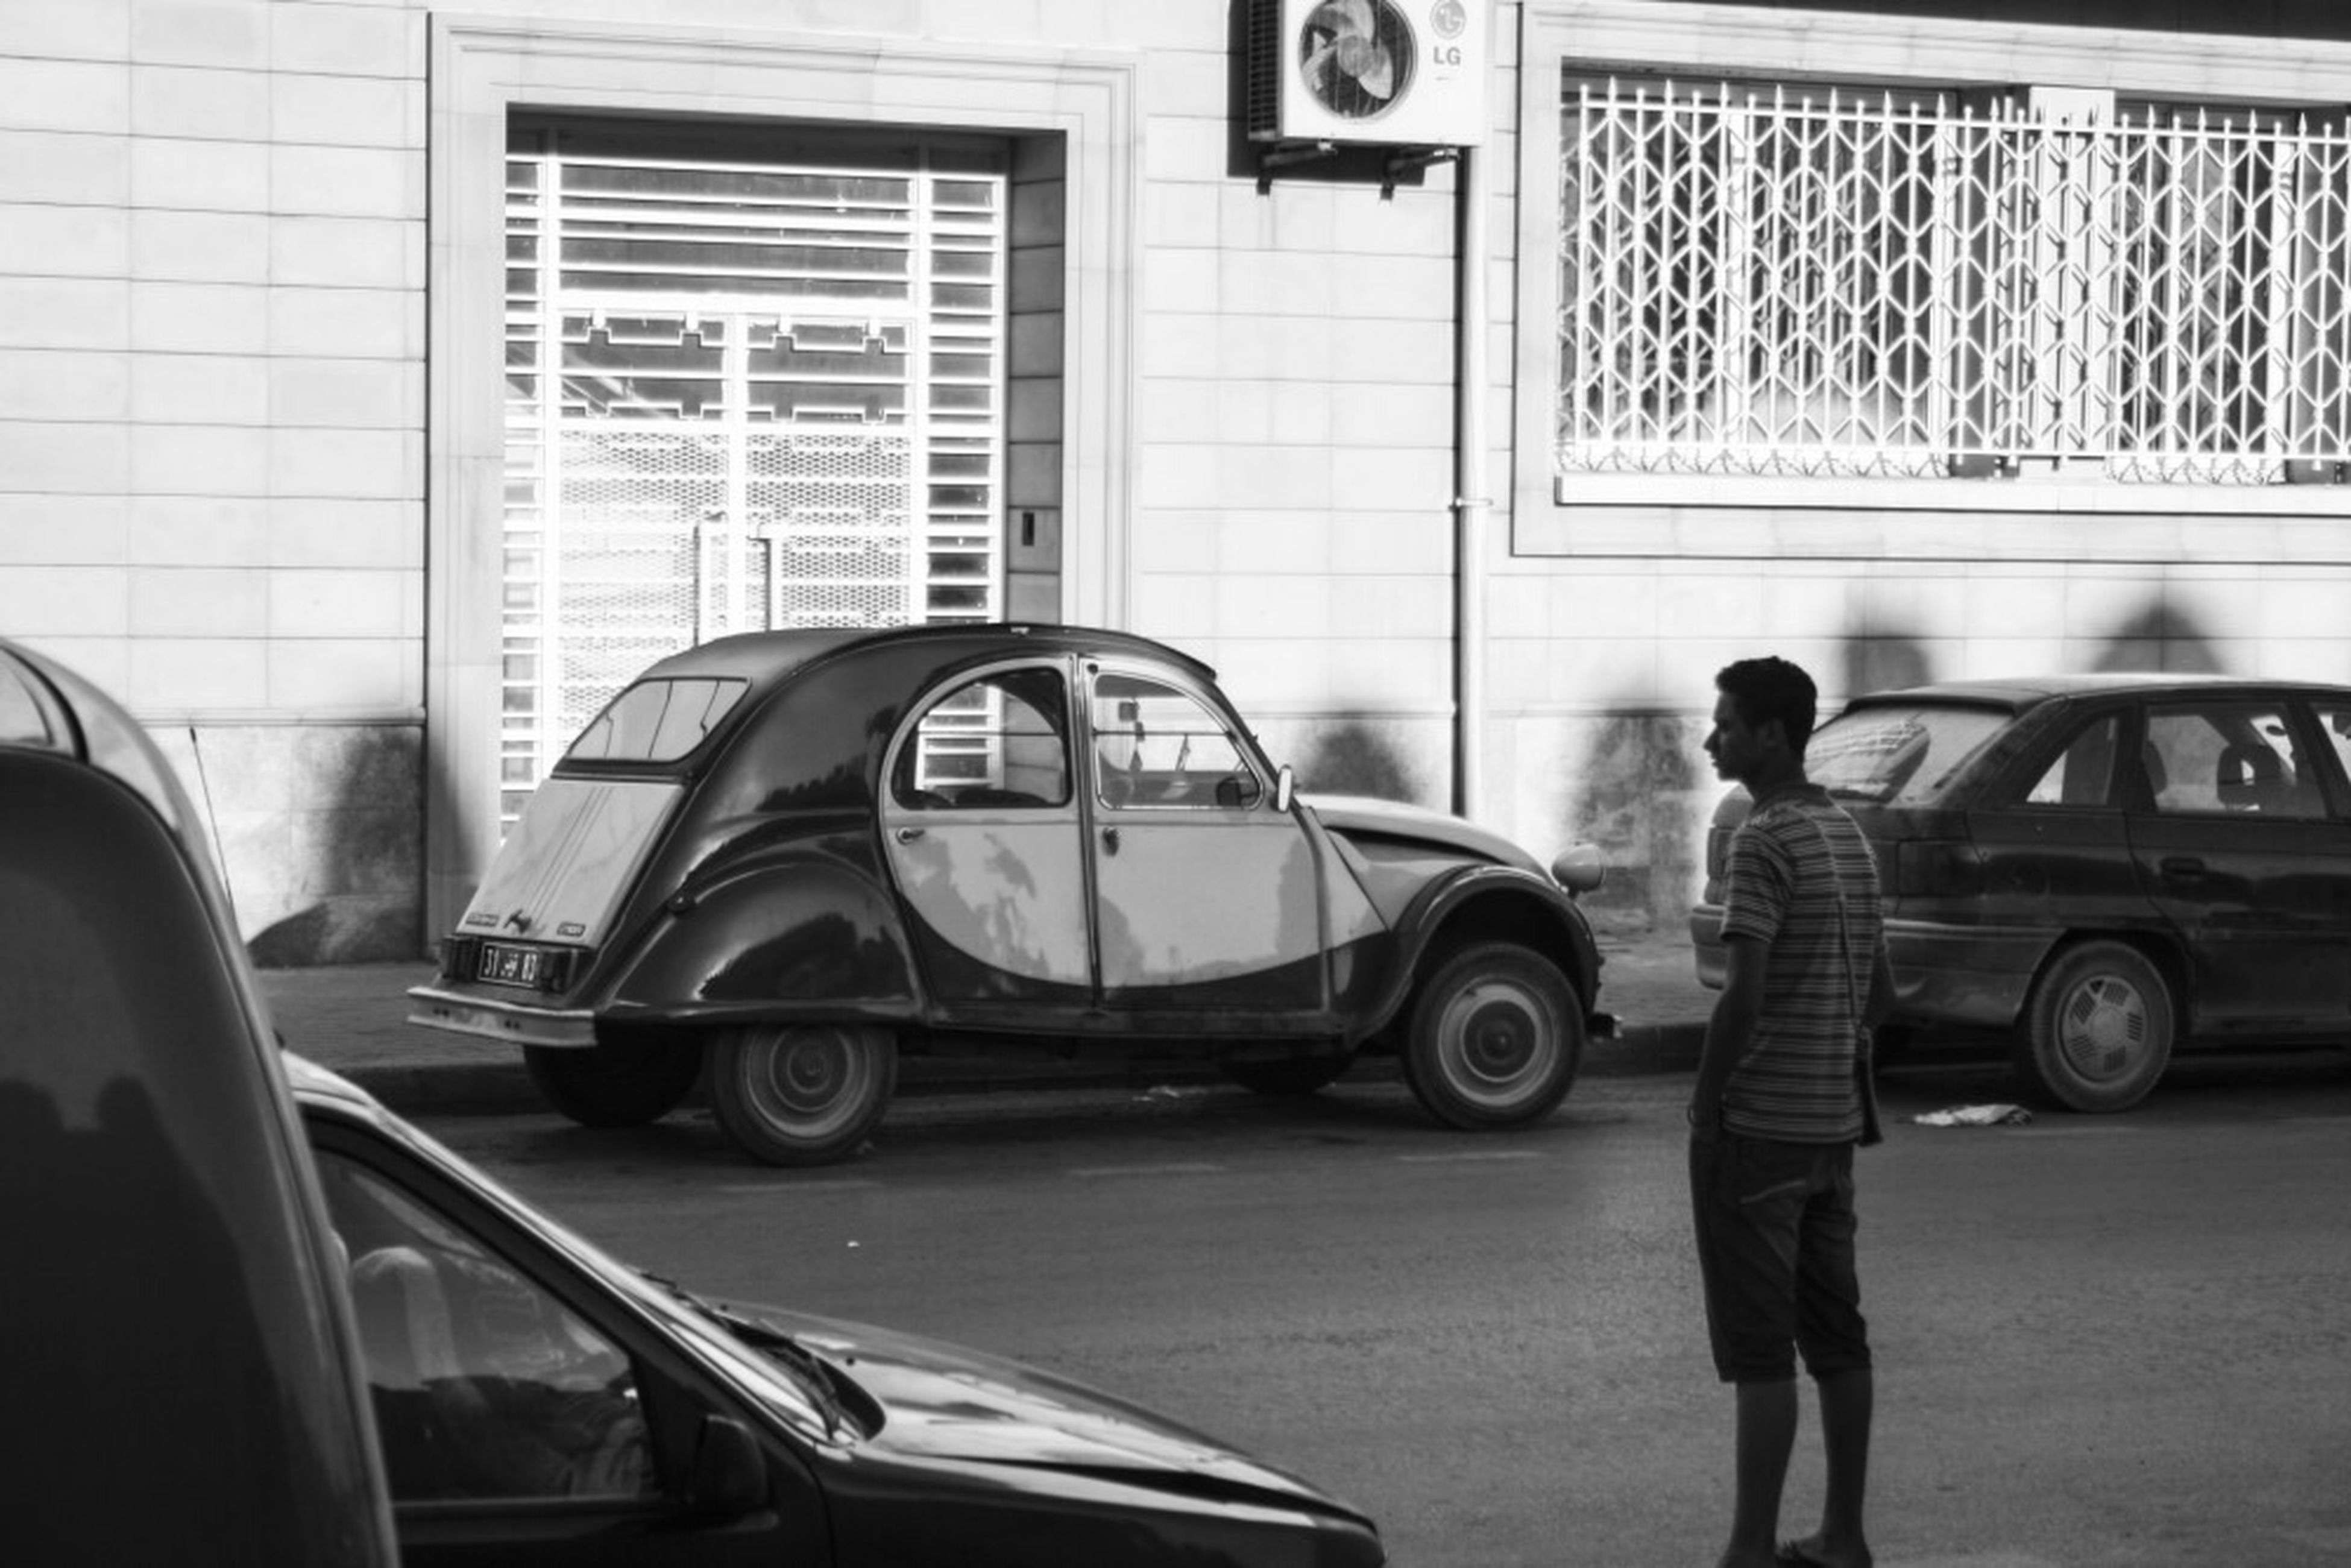 transportation, land vehicle, mode of transport, lifestyles, car, street, building exterior, men, architecture, built structure, rear view, leisure activity, full length, side view, casual clothing, city, window, day